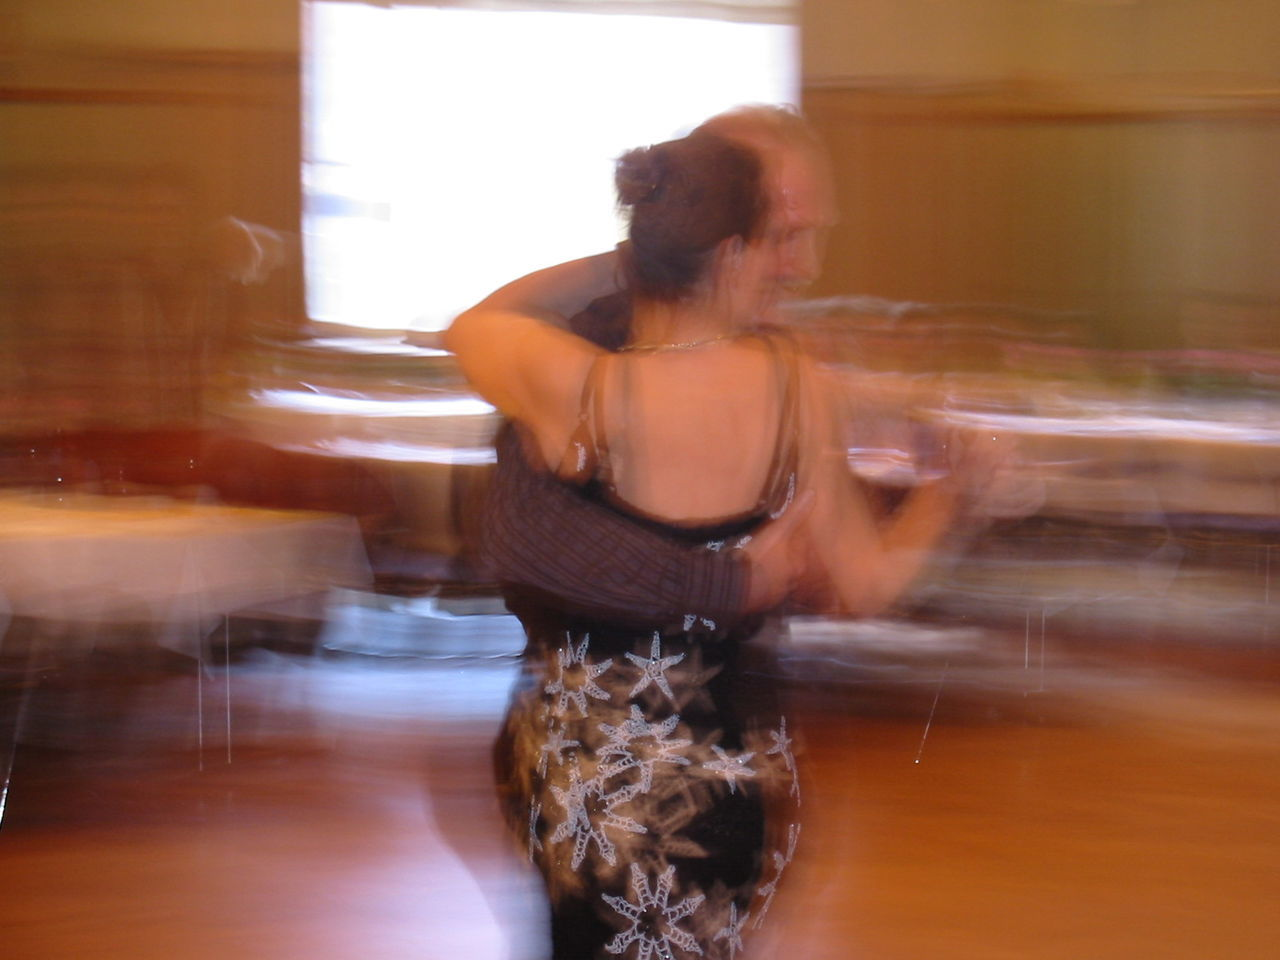 Adult Blurred Blurred Motion Blurredbackground Dance Dancing Day Indoors  Leisure Activity Motion Near People Real People Women Young Adult Young Women